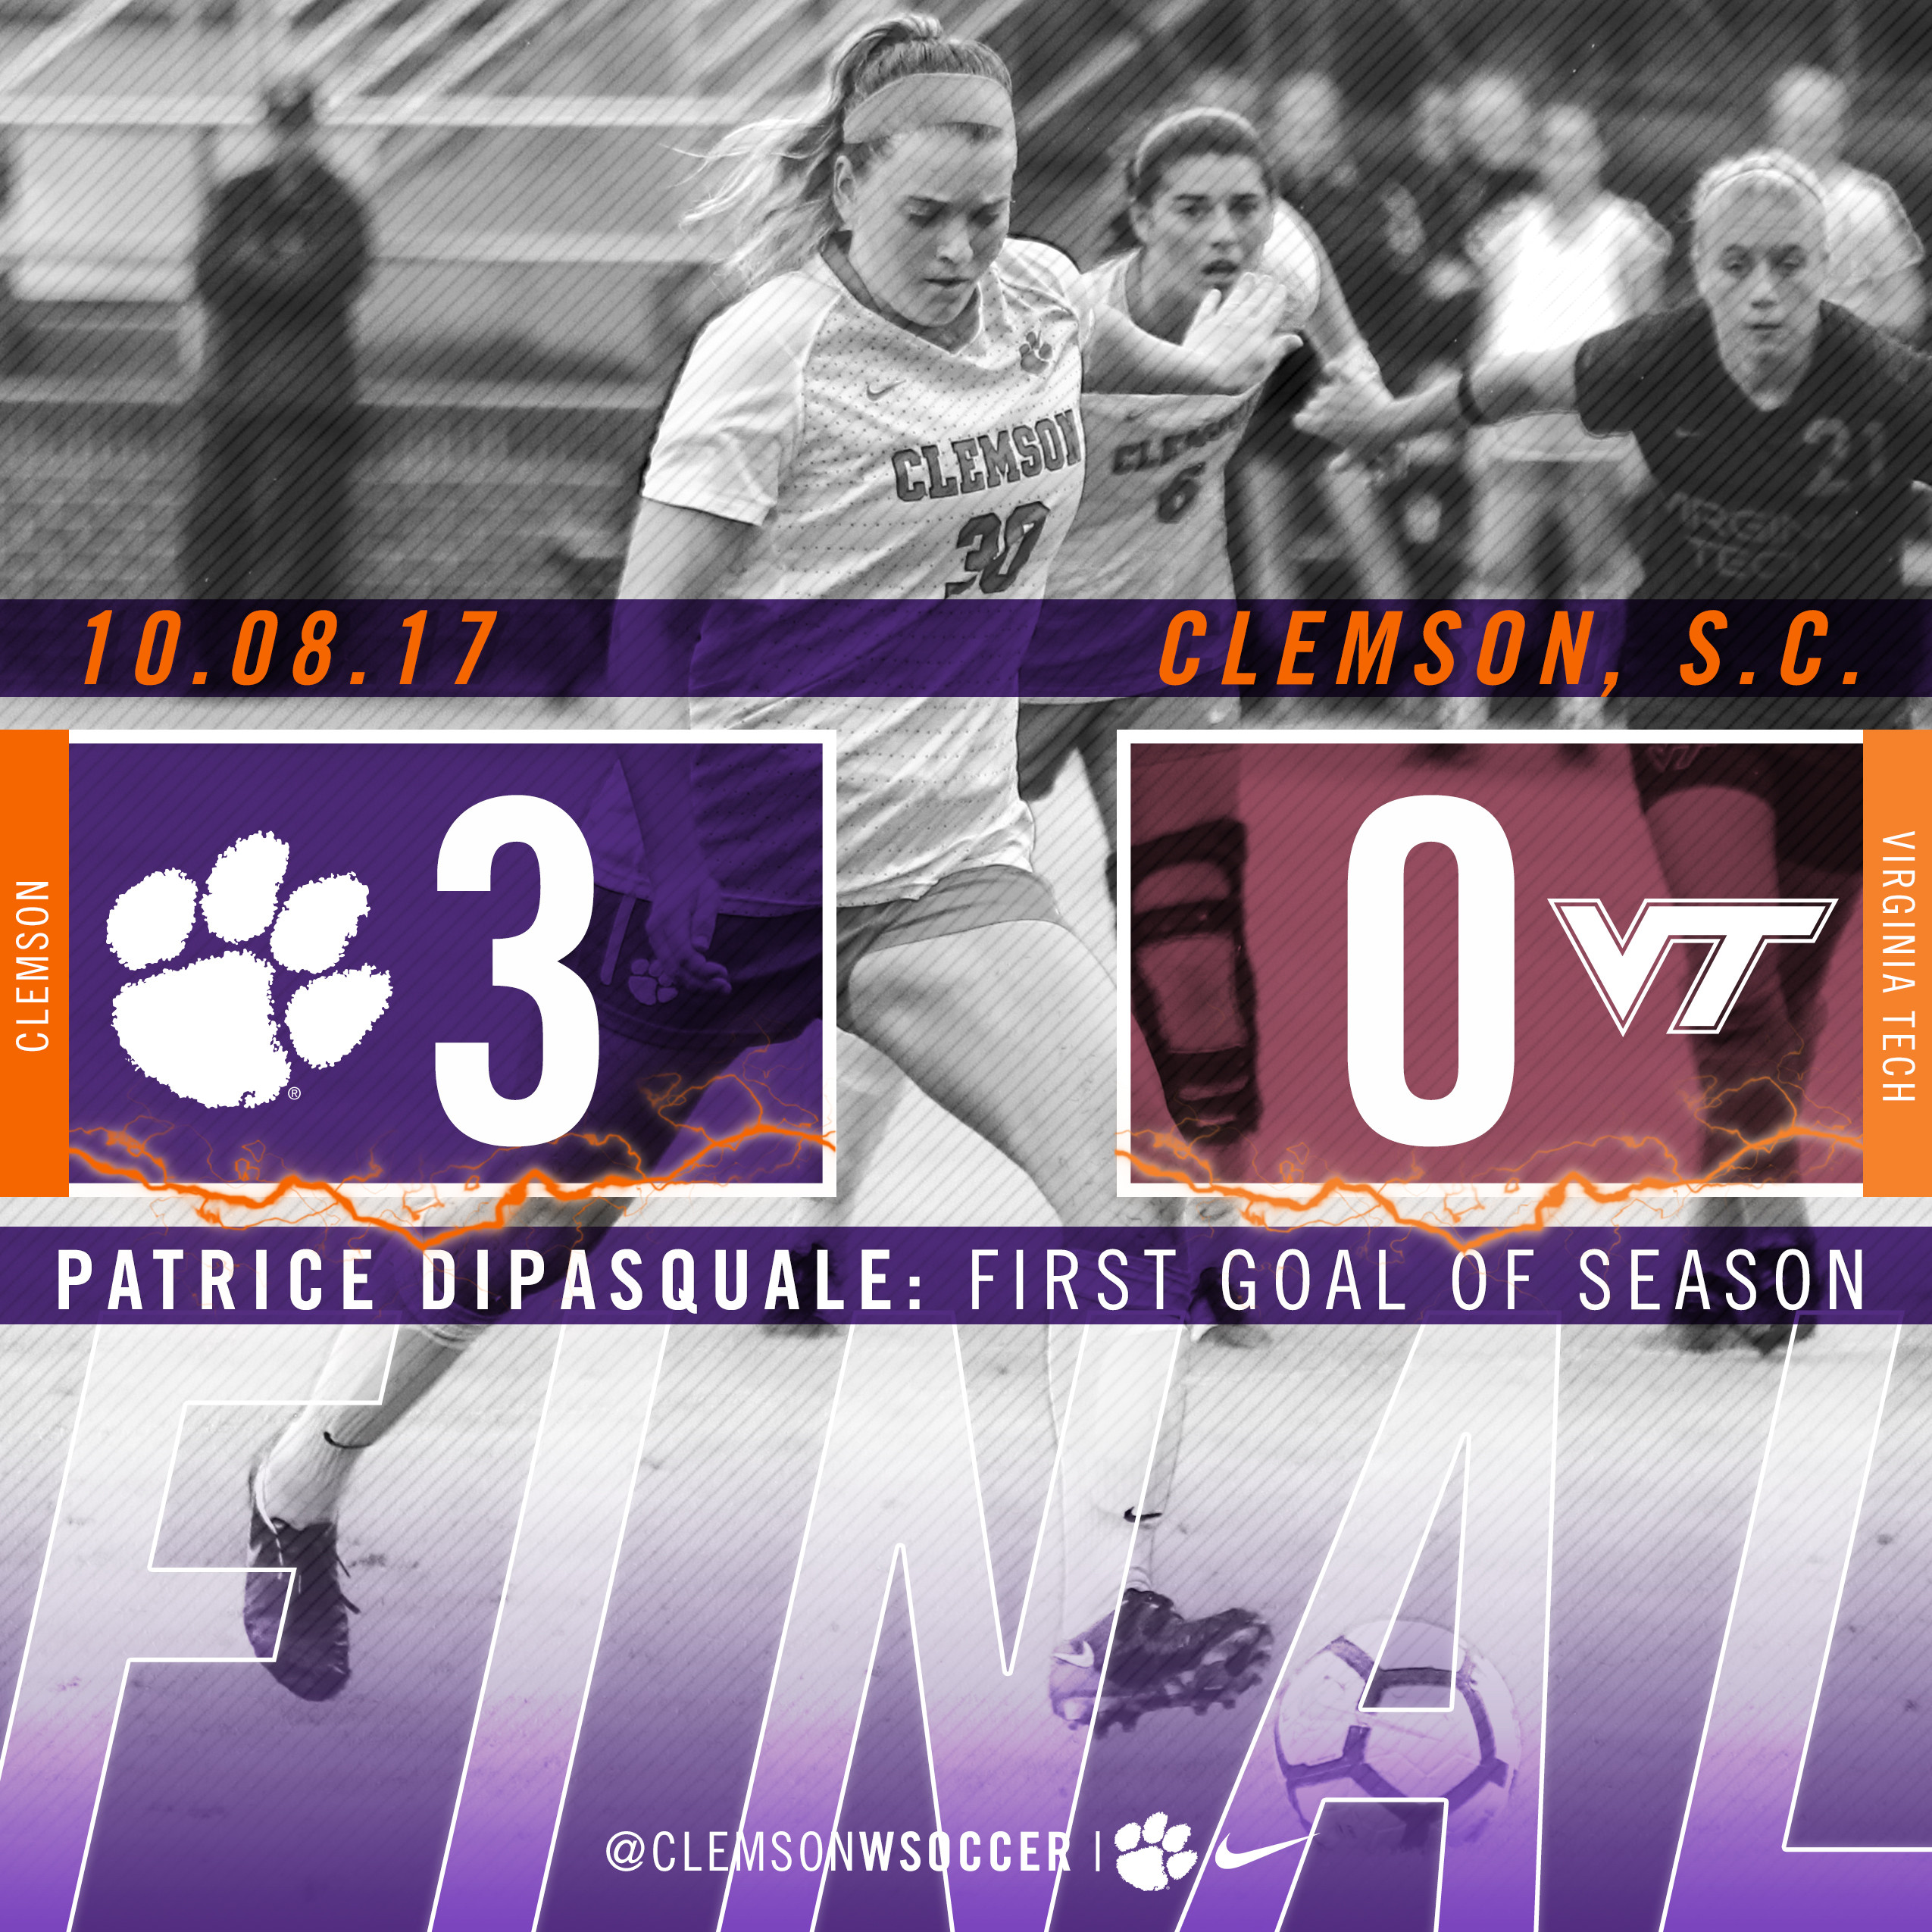 Clemson Topples Virginia Tech 3-0 on Sunday at Riggs